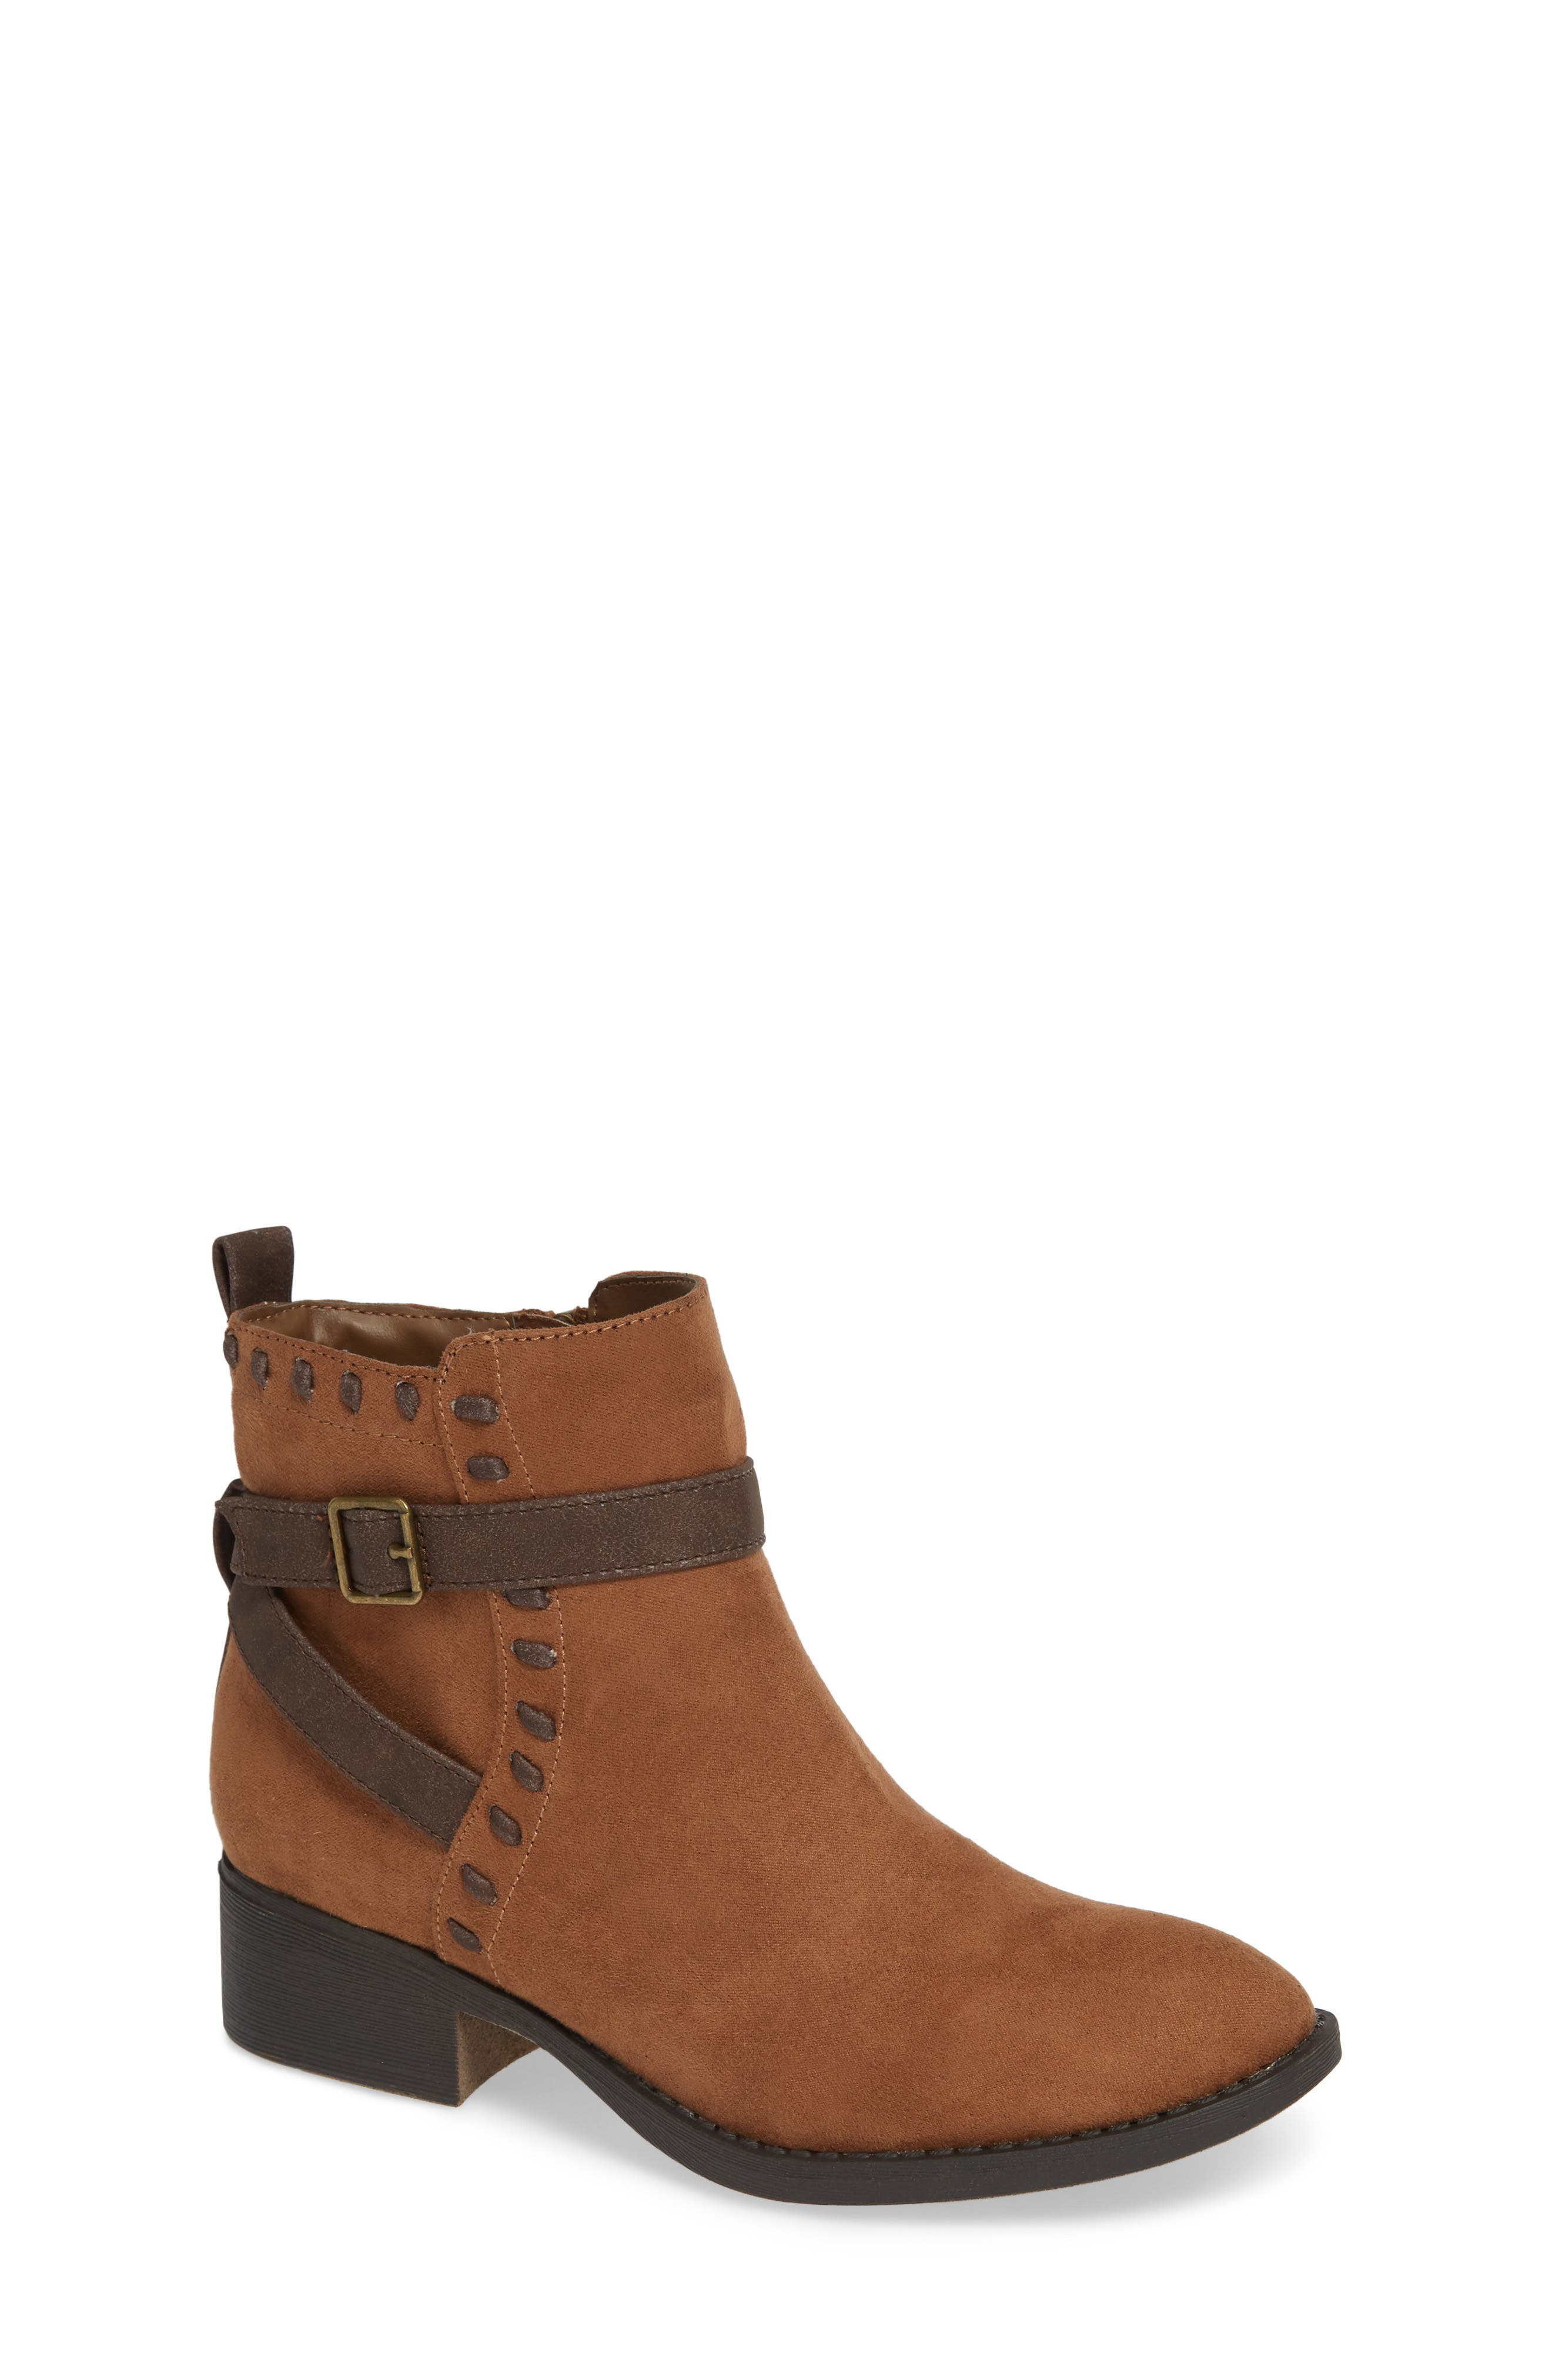 REACTION KENNETH COLE,                             Downtown Bootie,                             Main thumbnail 1, color,                             204